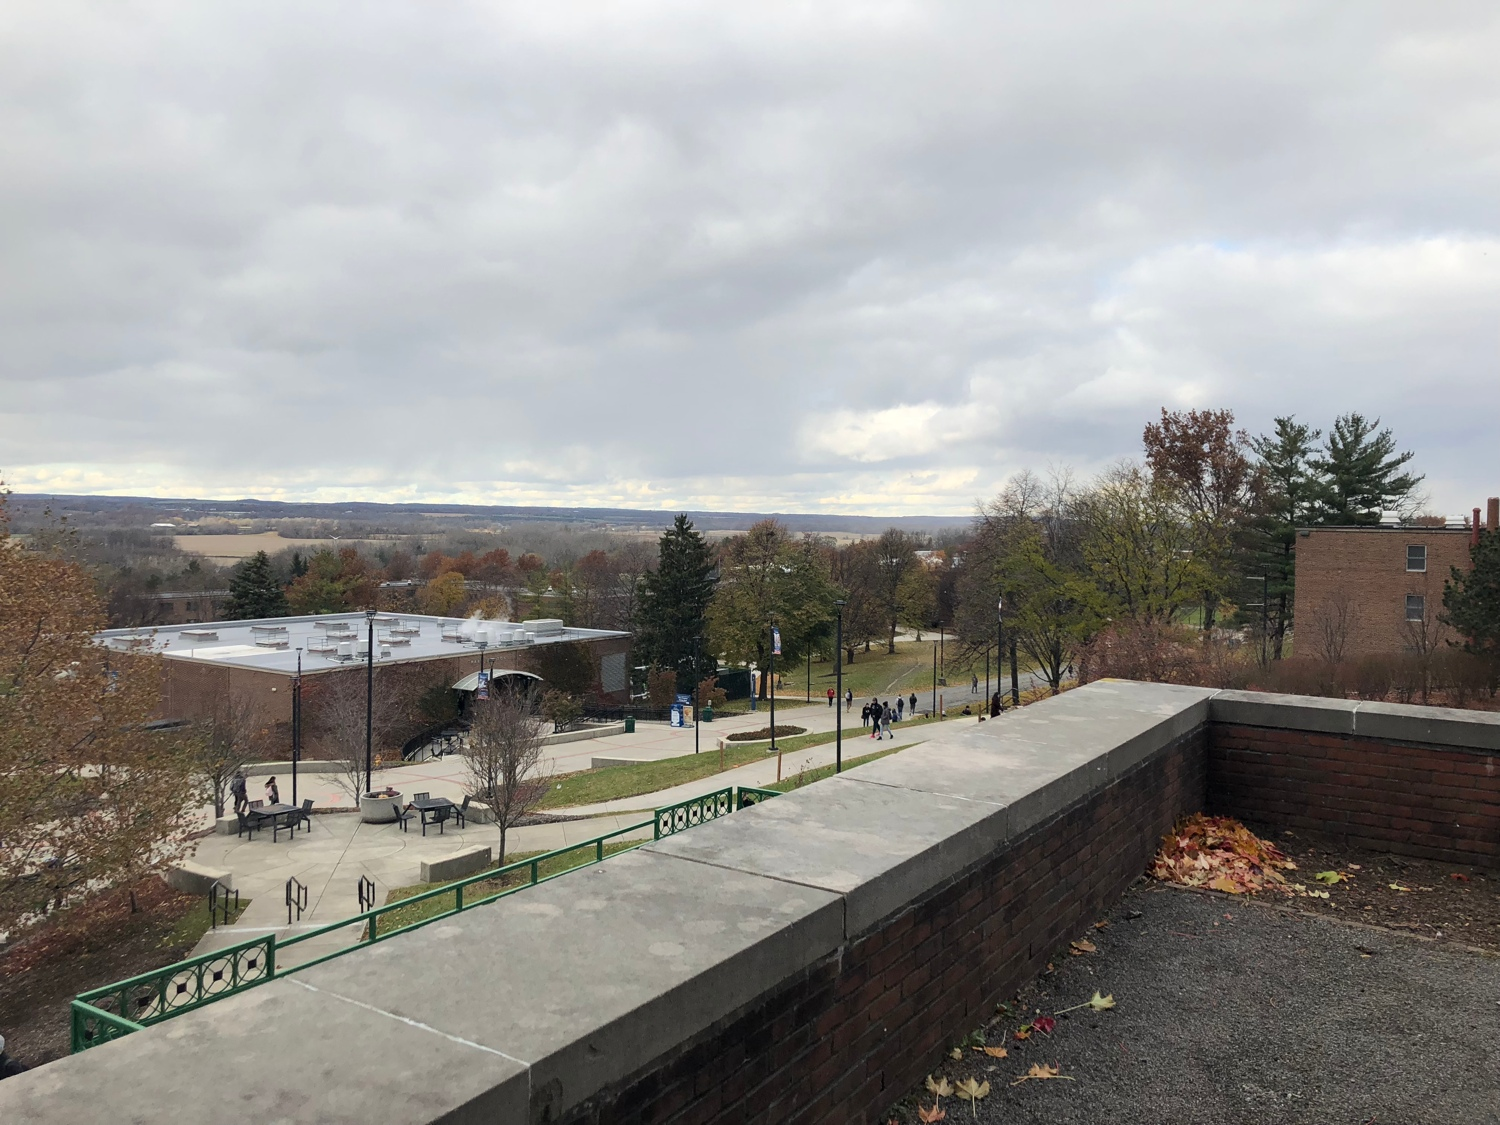 View from the back of Sturges Hall, SUNY Geneseo